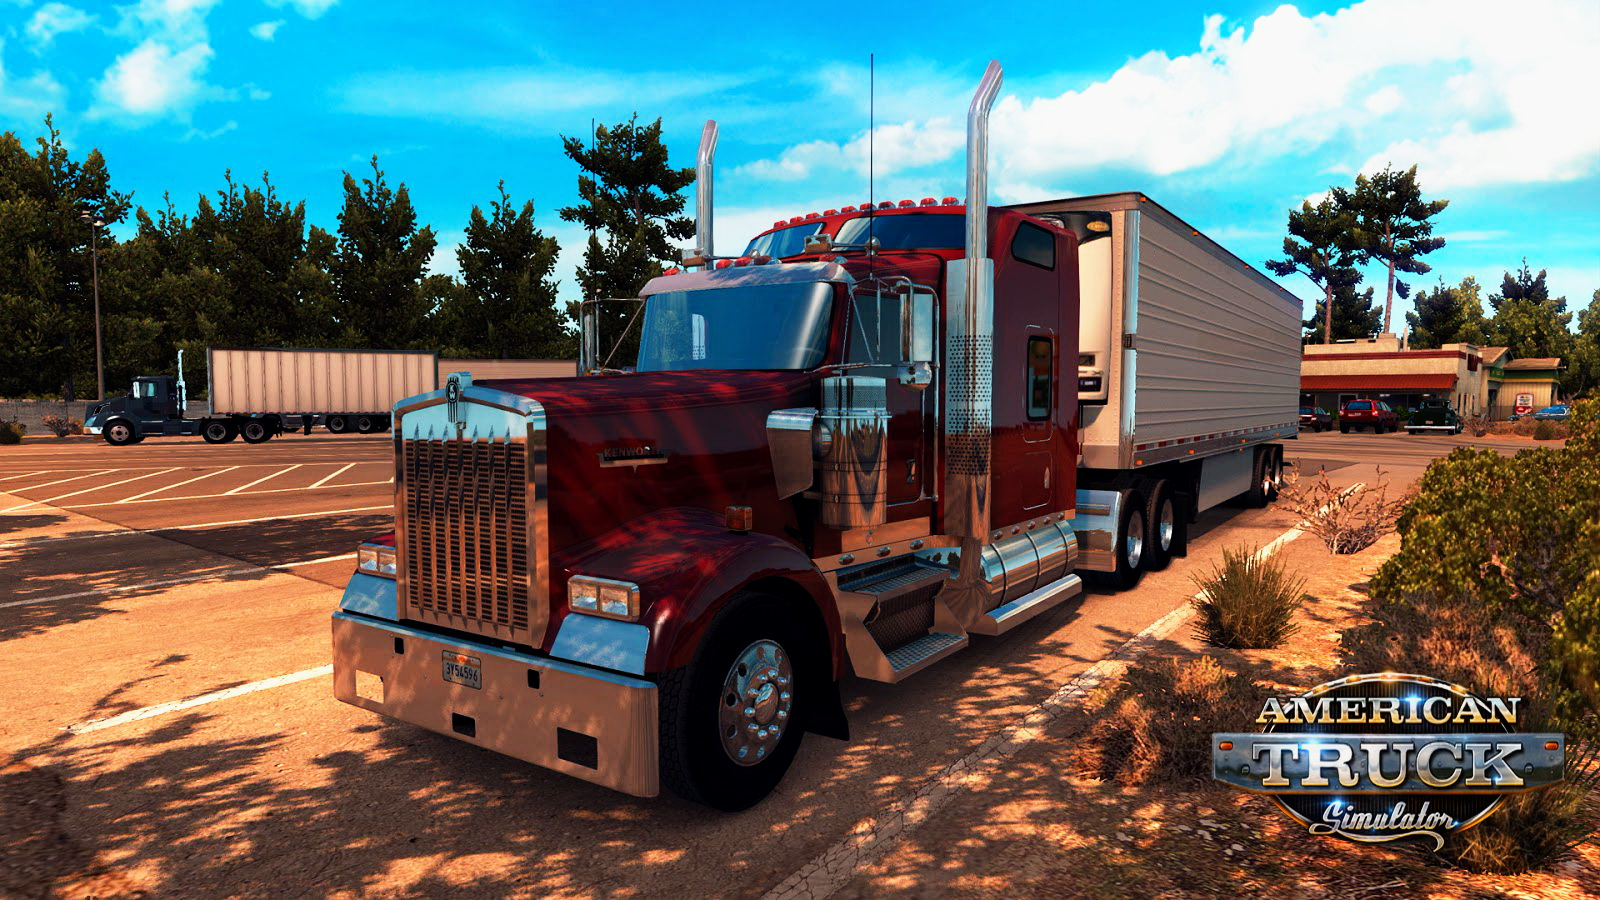 New Screenshots from American Truck Simulator